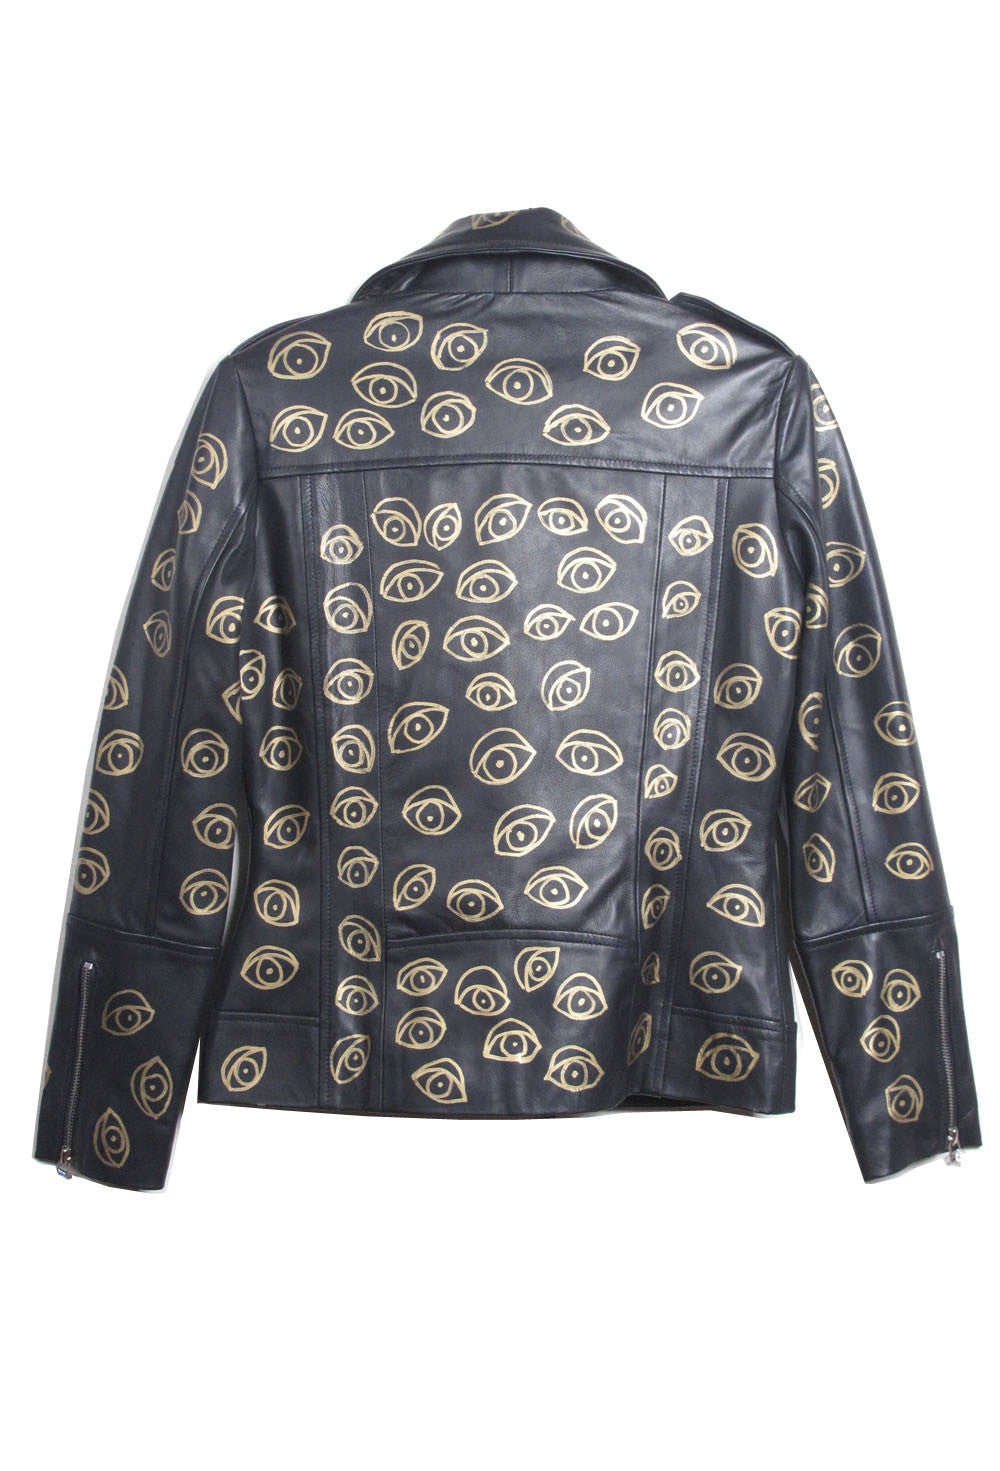 Suzanne Mallouk  'EYE SEE YOU' MC Genuine Leather Jacket - IMMEDIATE DELIVERY SIZE M